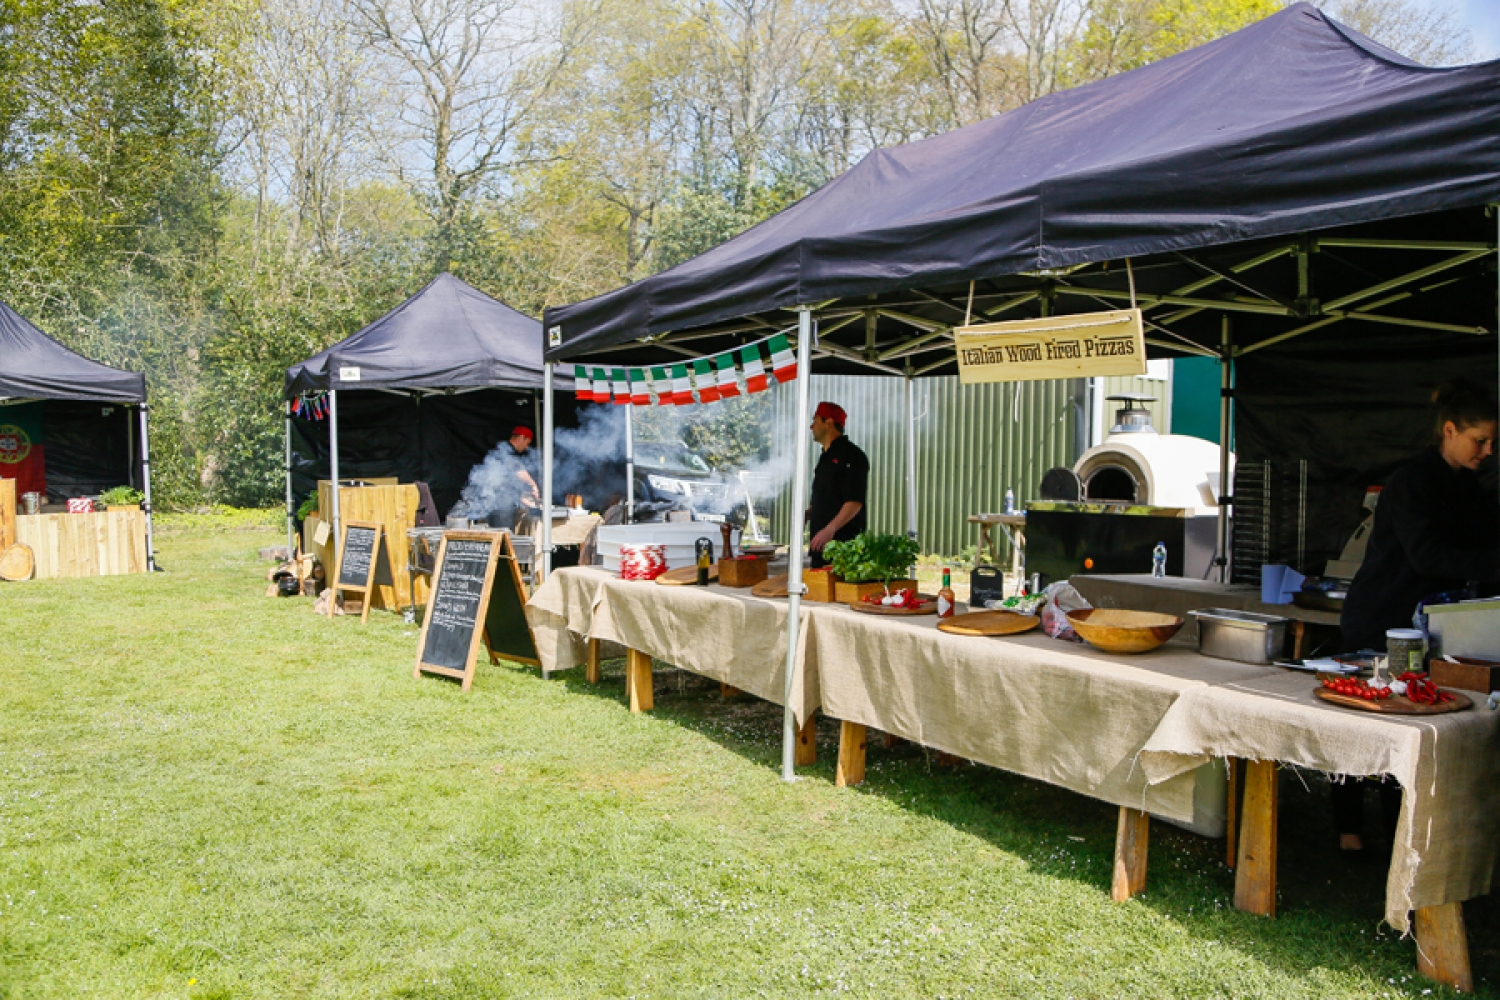 Street food catering at your wedding